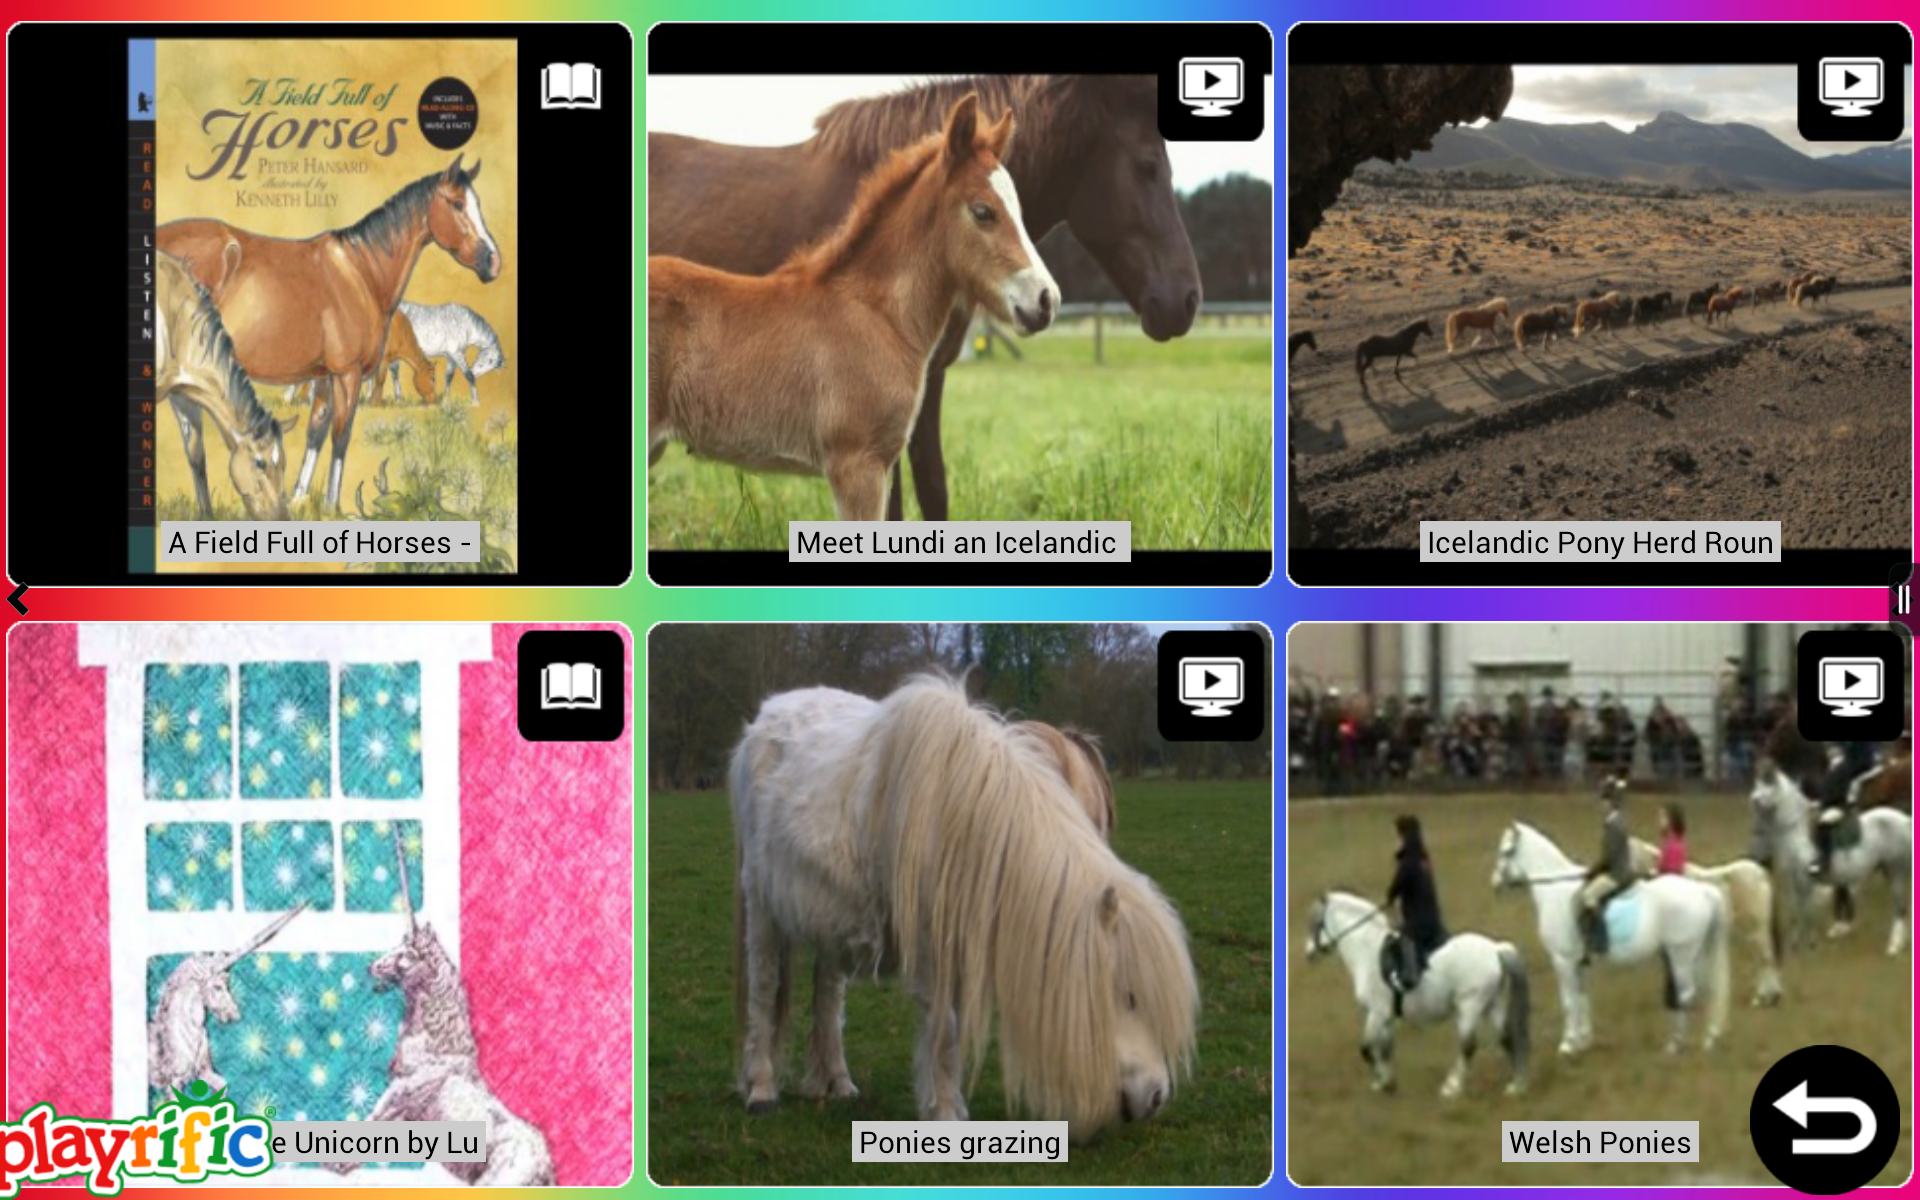 Ponies and Horses: Real & Cartoon Pony Books, Videos, Games, Photos & Activities for Kids by Playrific